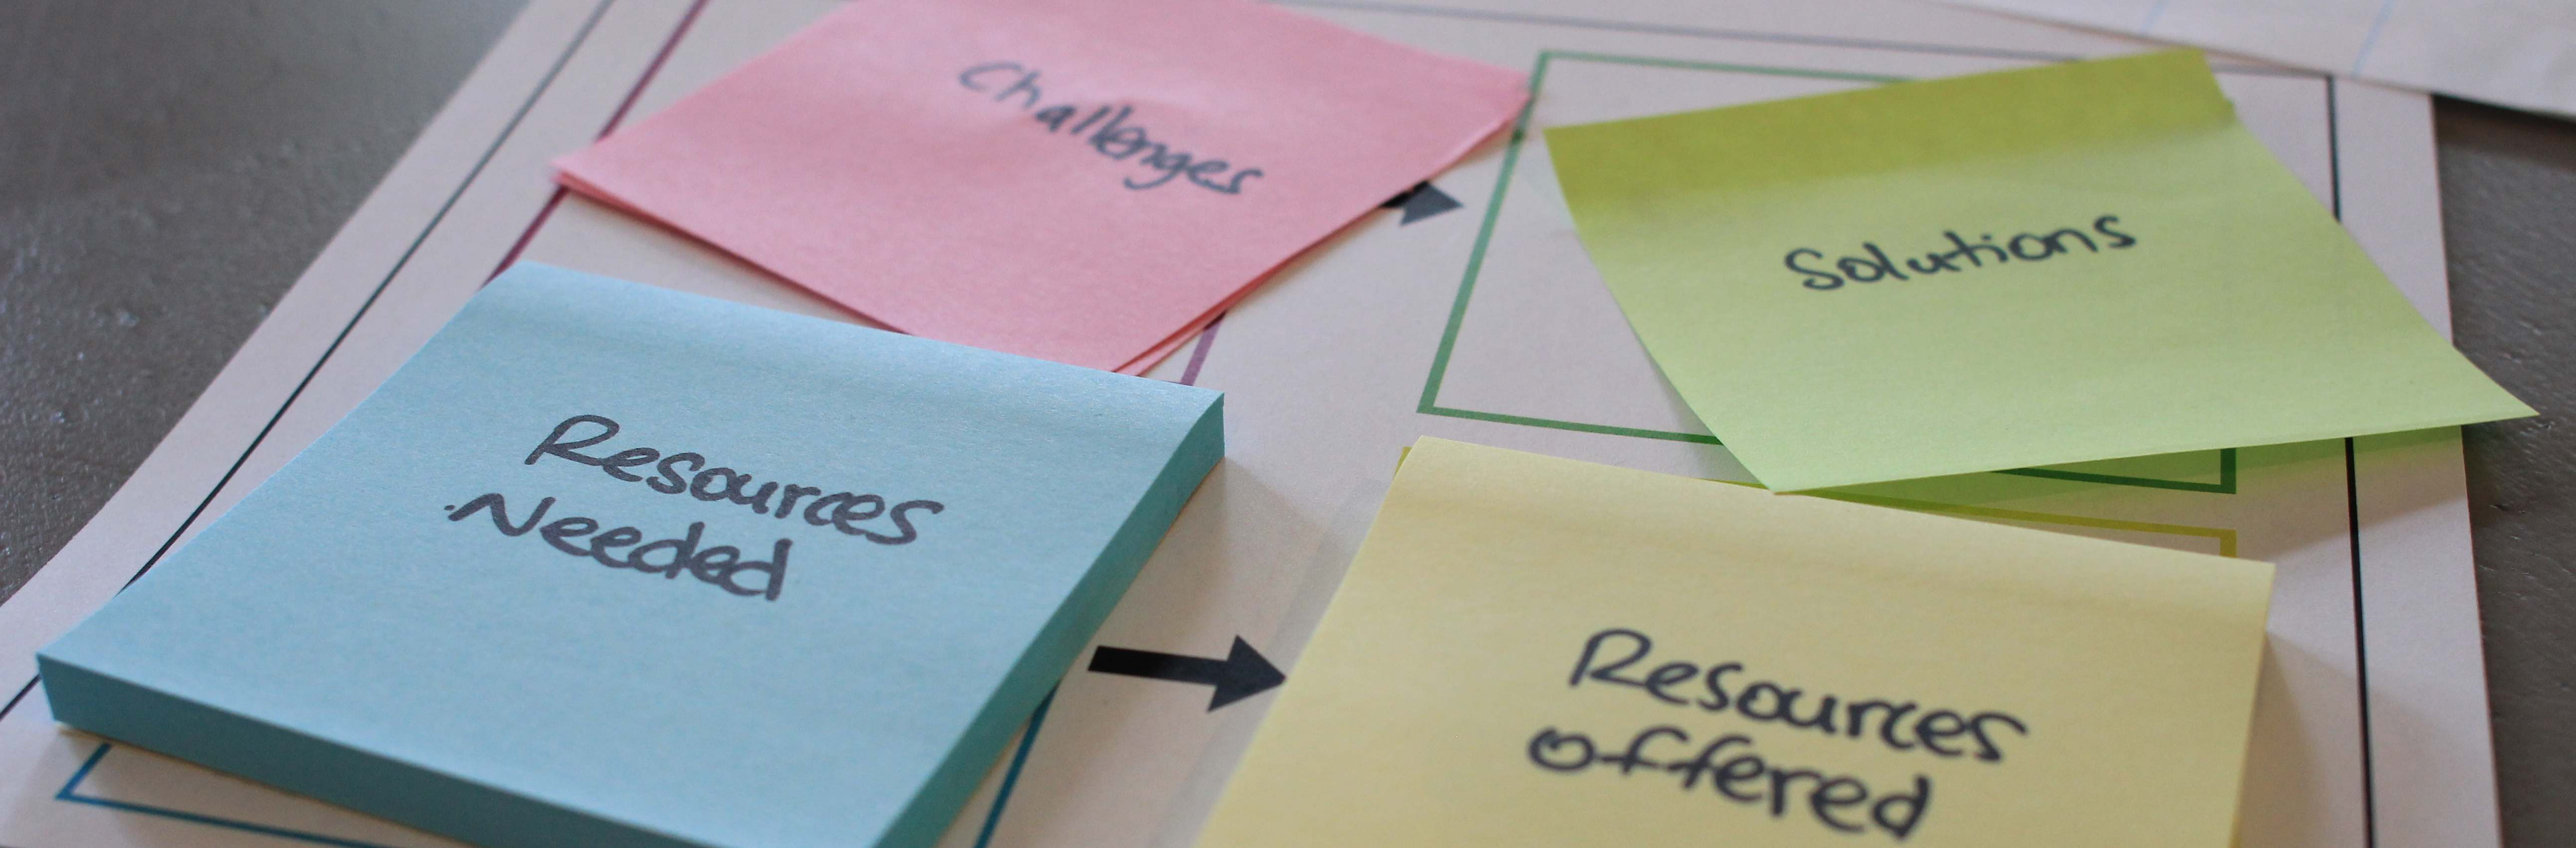 Money Matters Community Collaborative: Design Day | The Working Centre